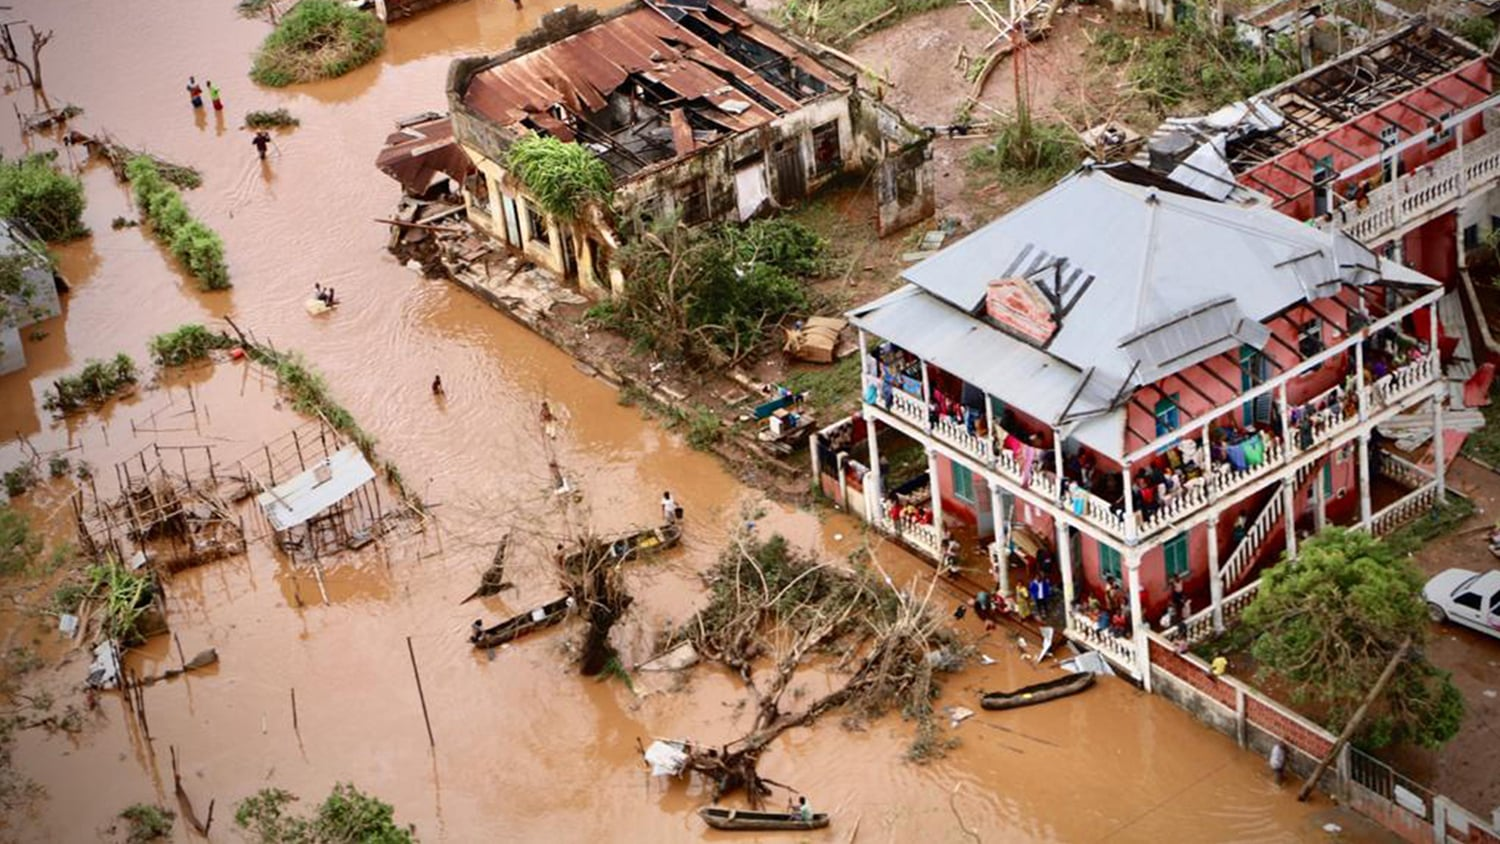 Mungo supports Cyclone Idai by funding Sussuro crowdfunding